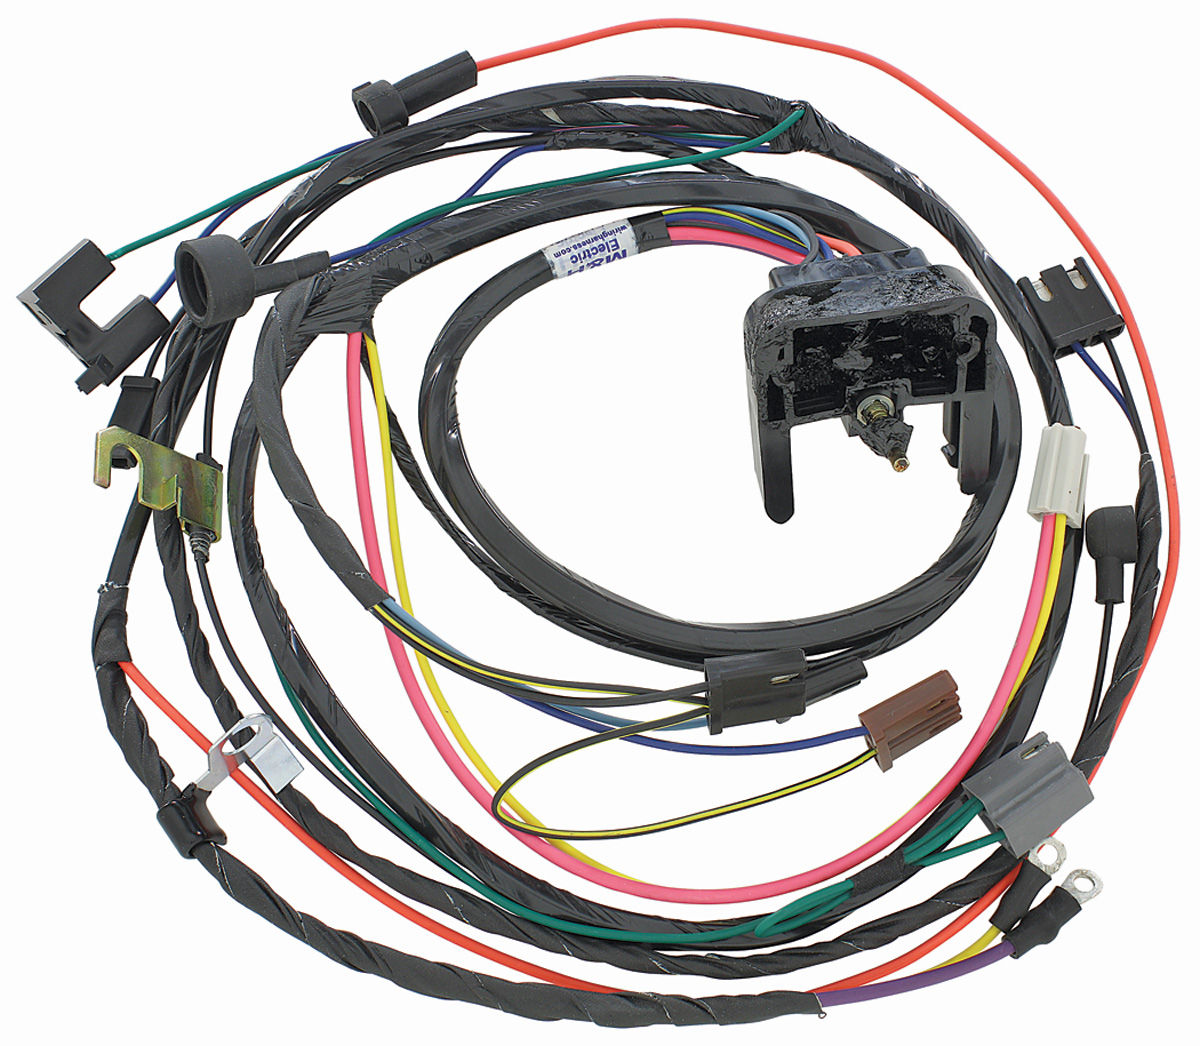 m h 1970 chevelle engine harness 396 454 hei w manual trans opgi com rh opgi com 71 Chevelle Parts 1971 chevelle ss wiring harness